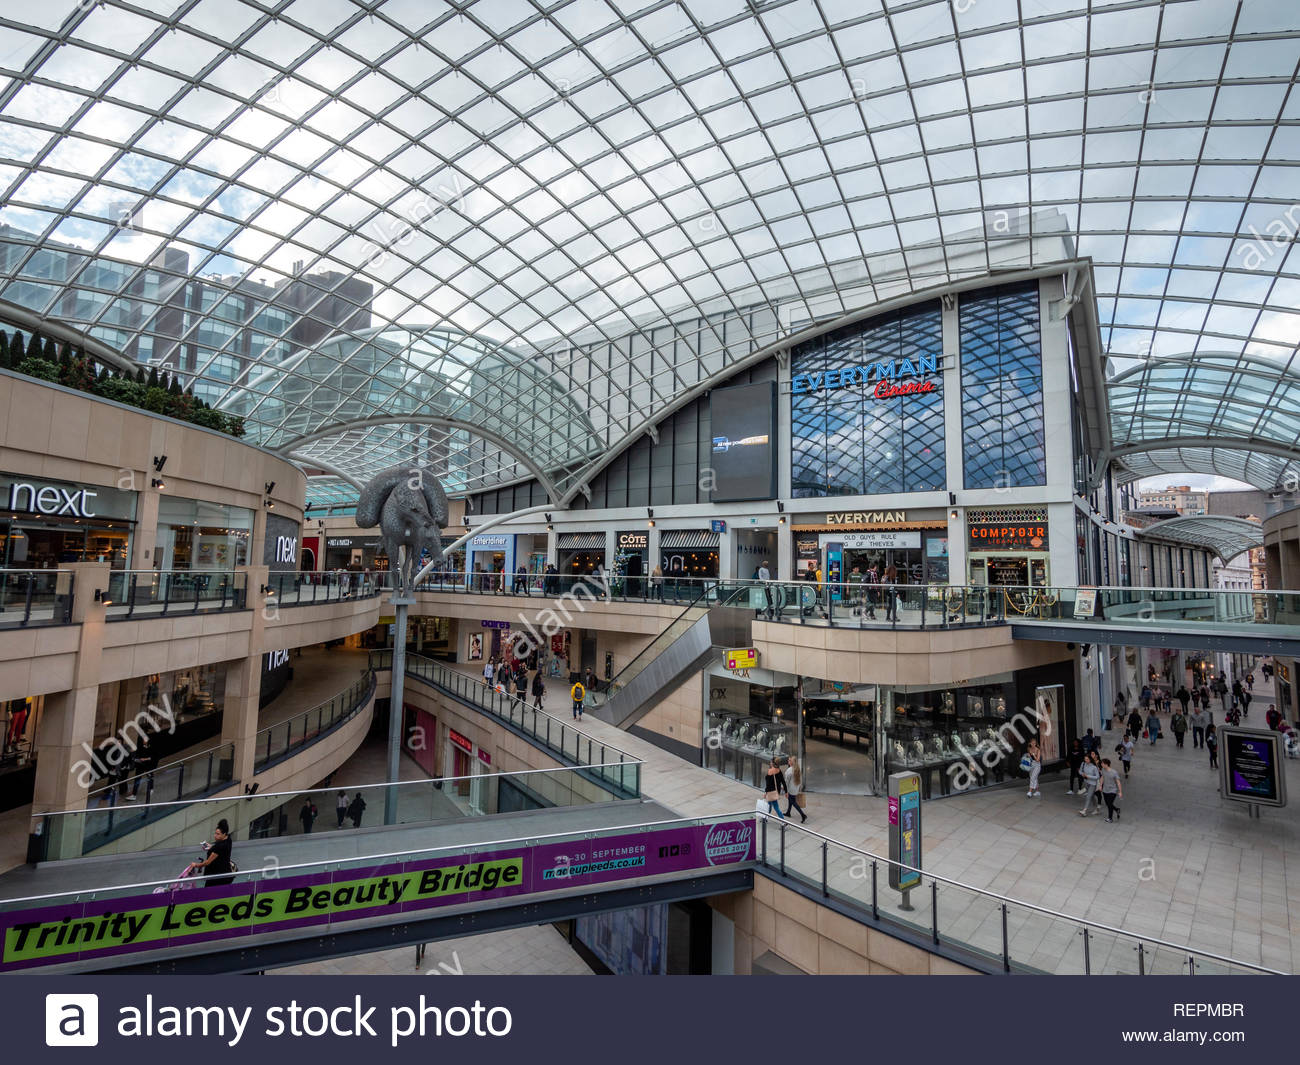 Trinity Leeds Shopping Centre Leeds West Yorkshire England - Stock Image